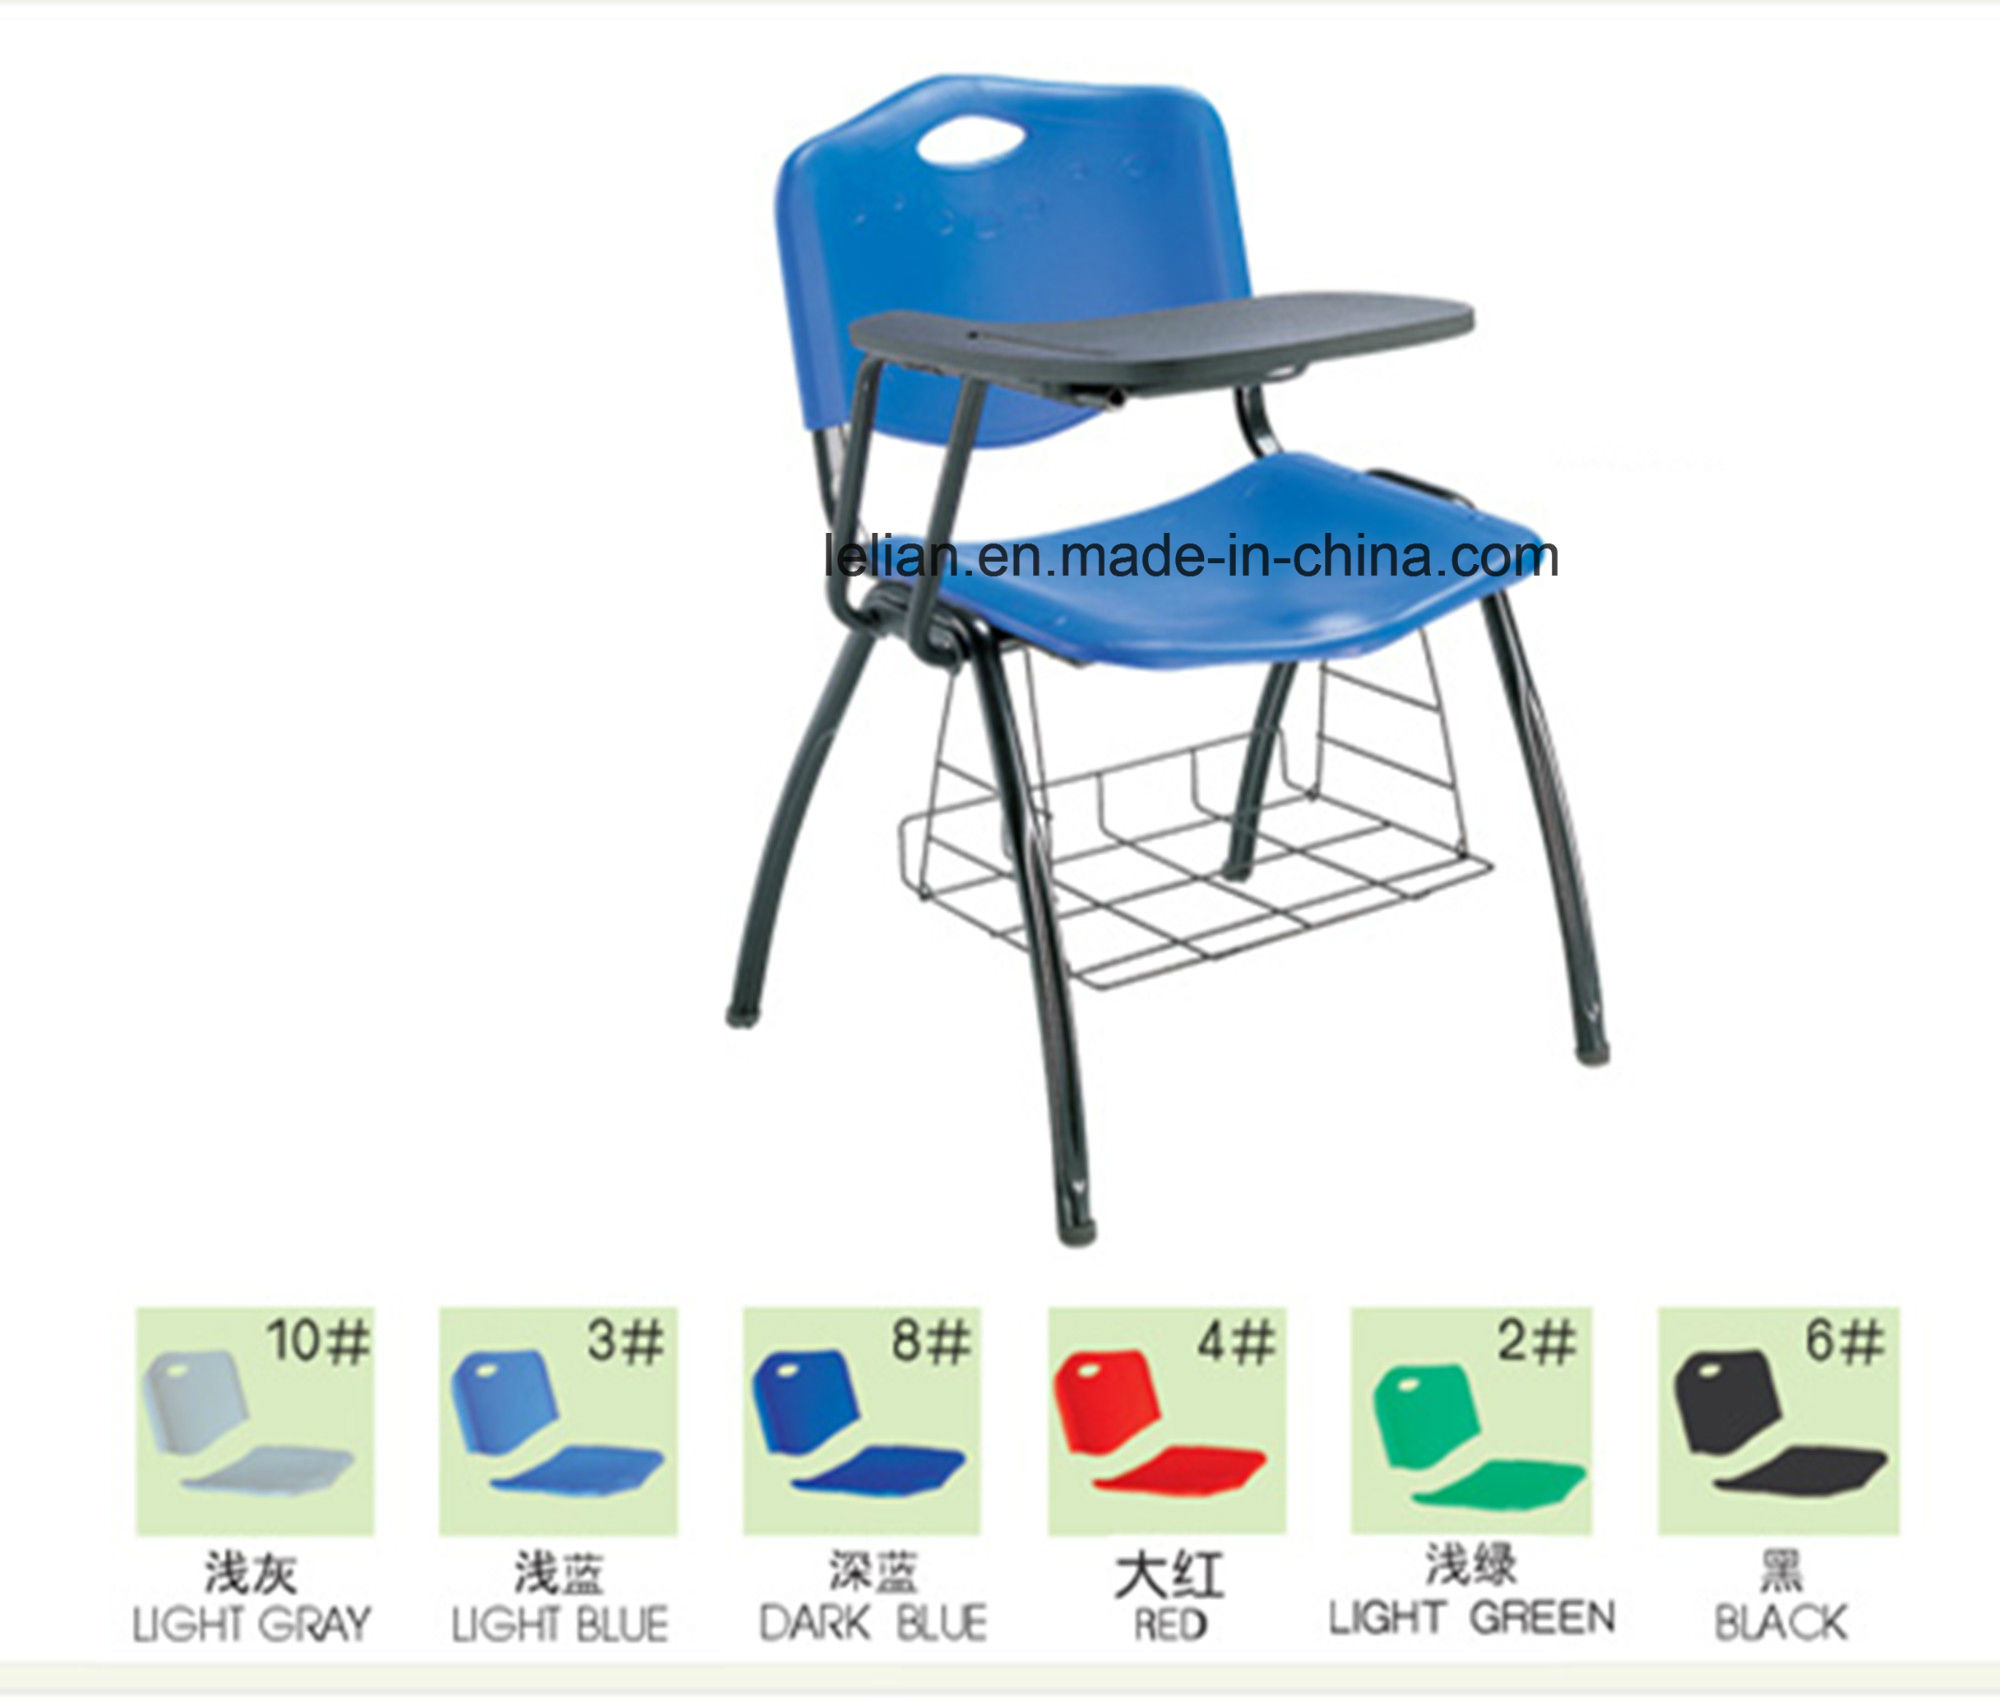 Lightweight Stack Chair with Tablet for Option (LL-0003)